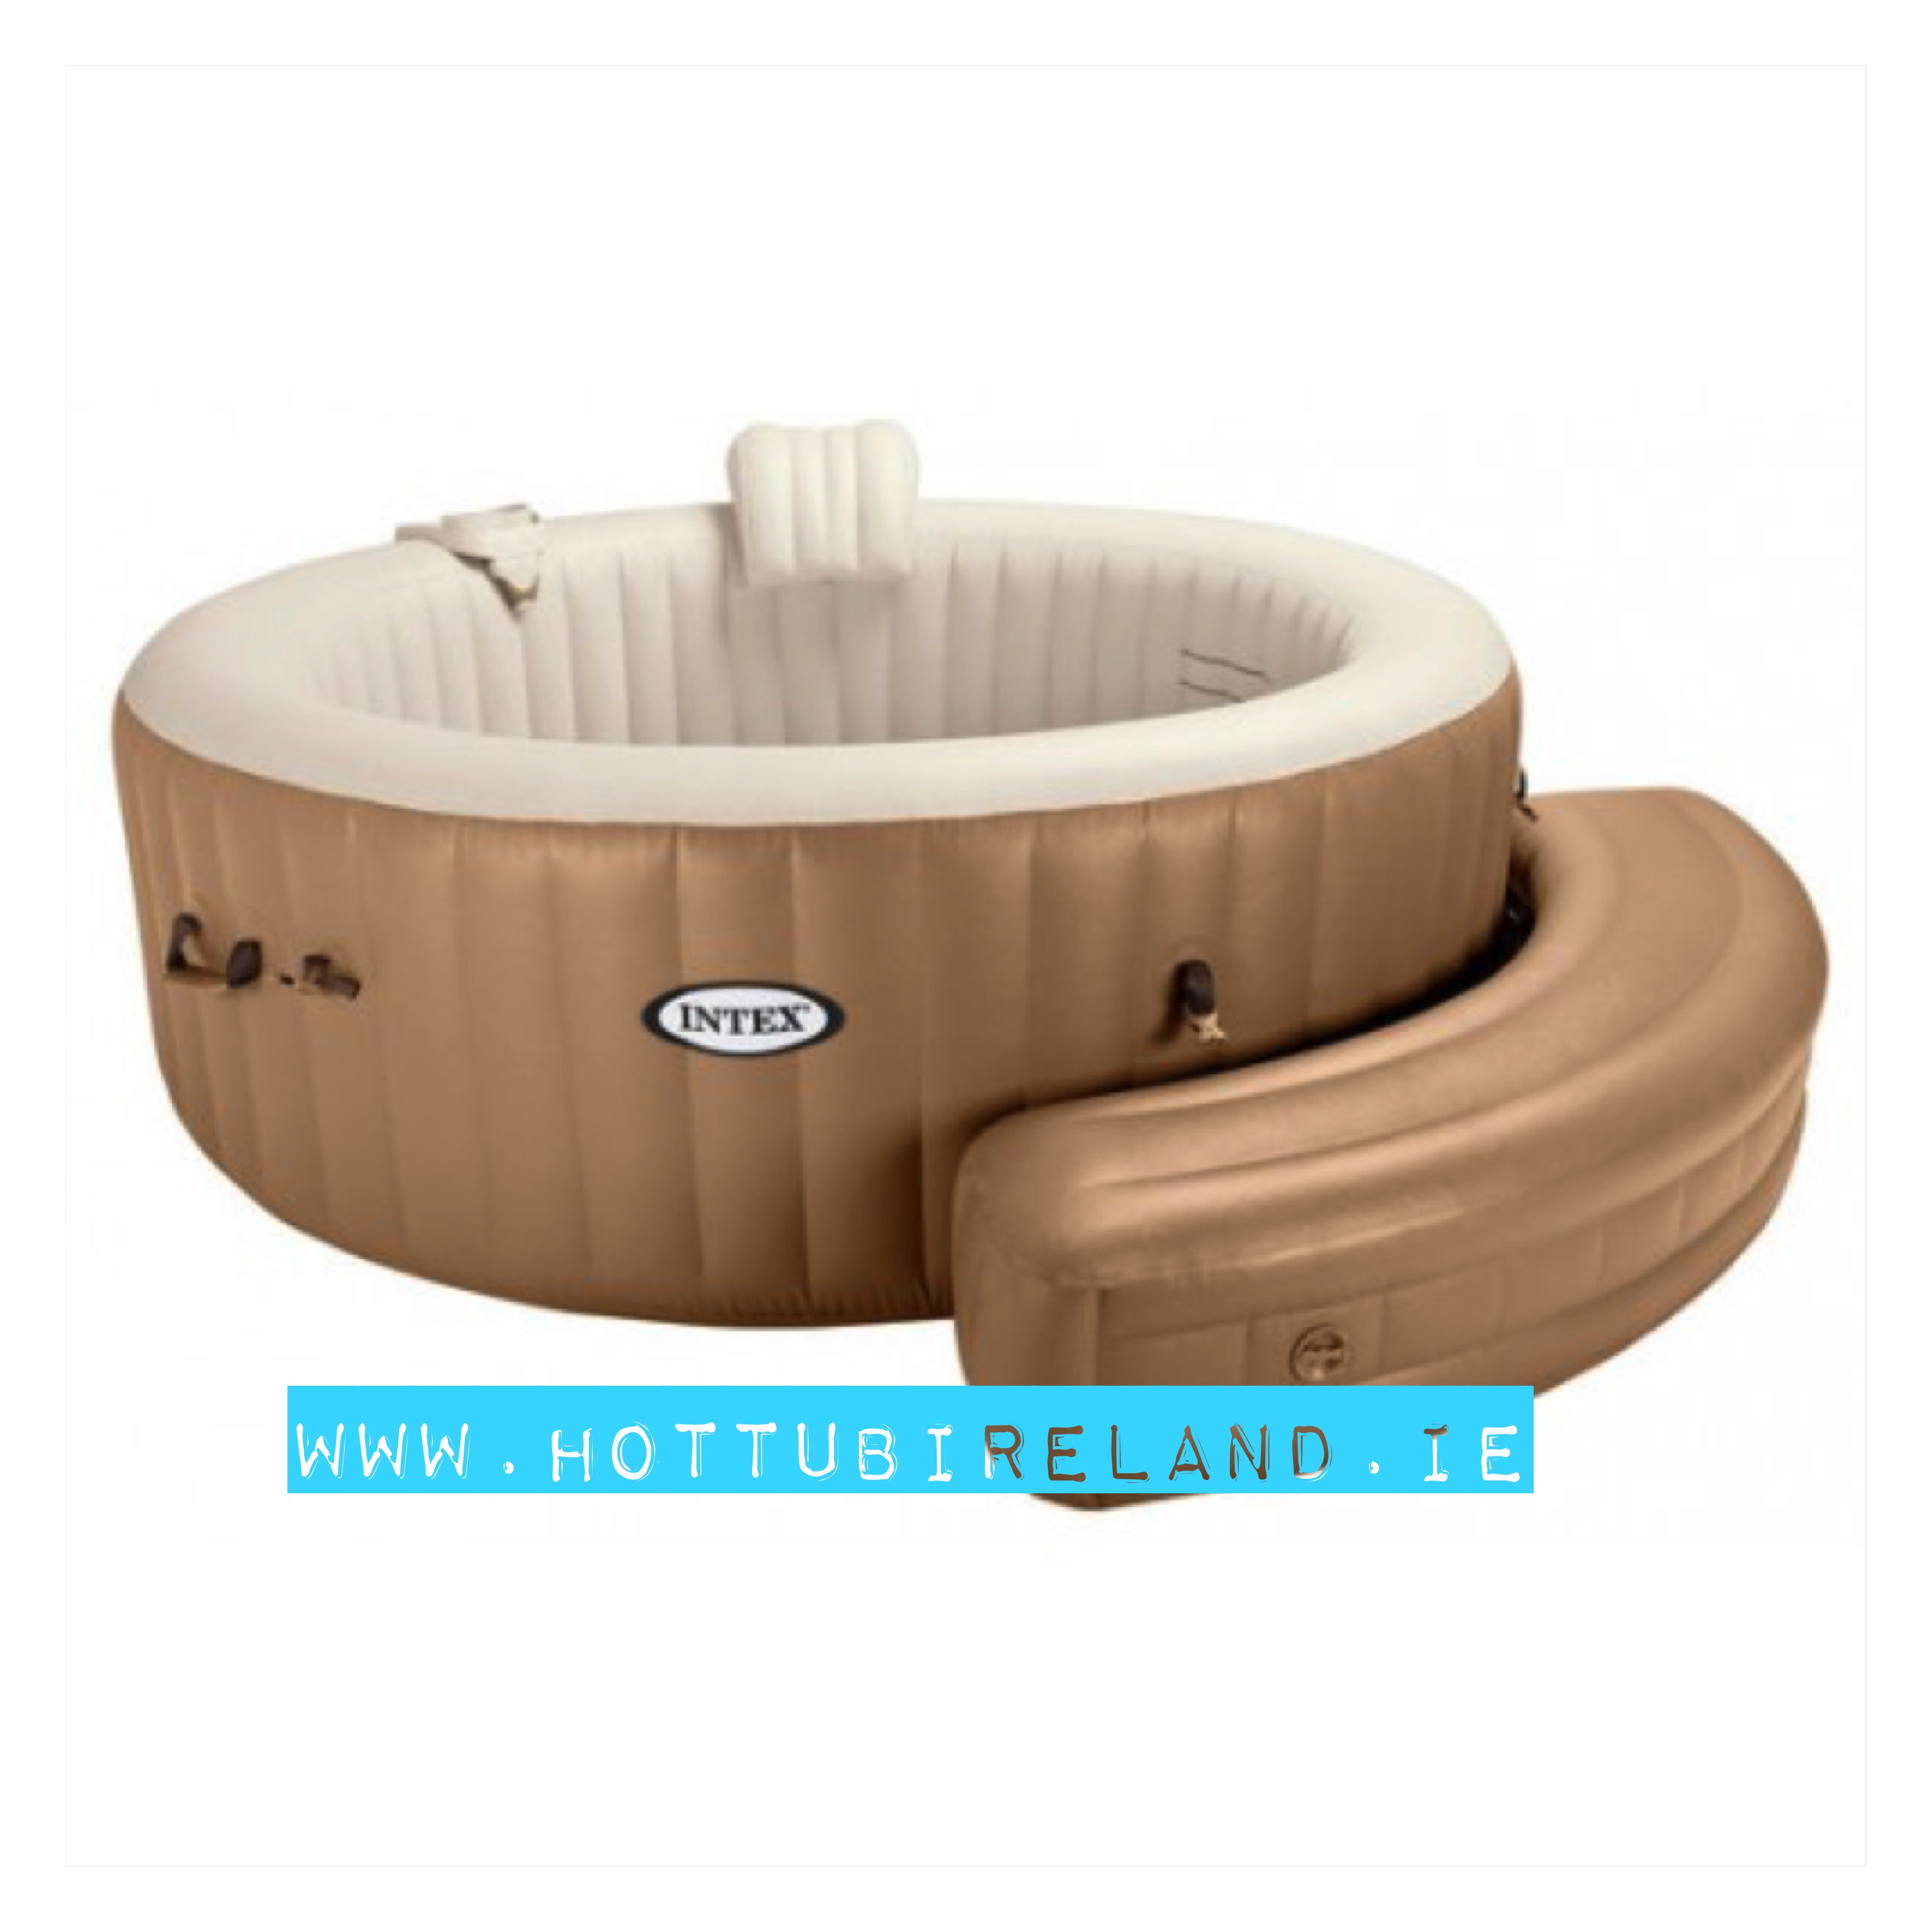 Hot Tub Accessories For Intex And Lay Z Spa#! on Fraction Strip